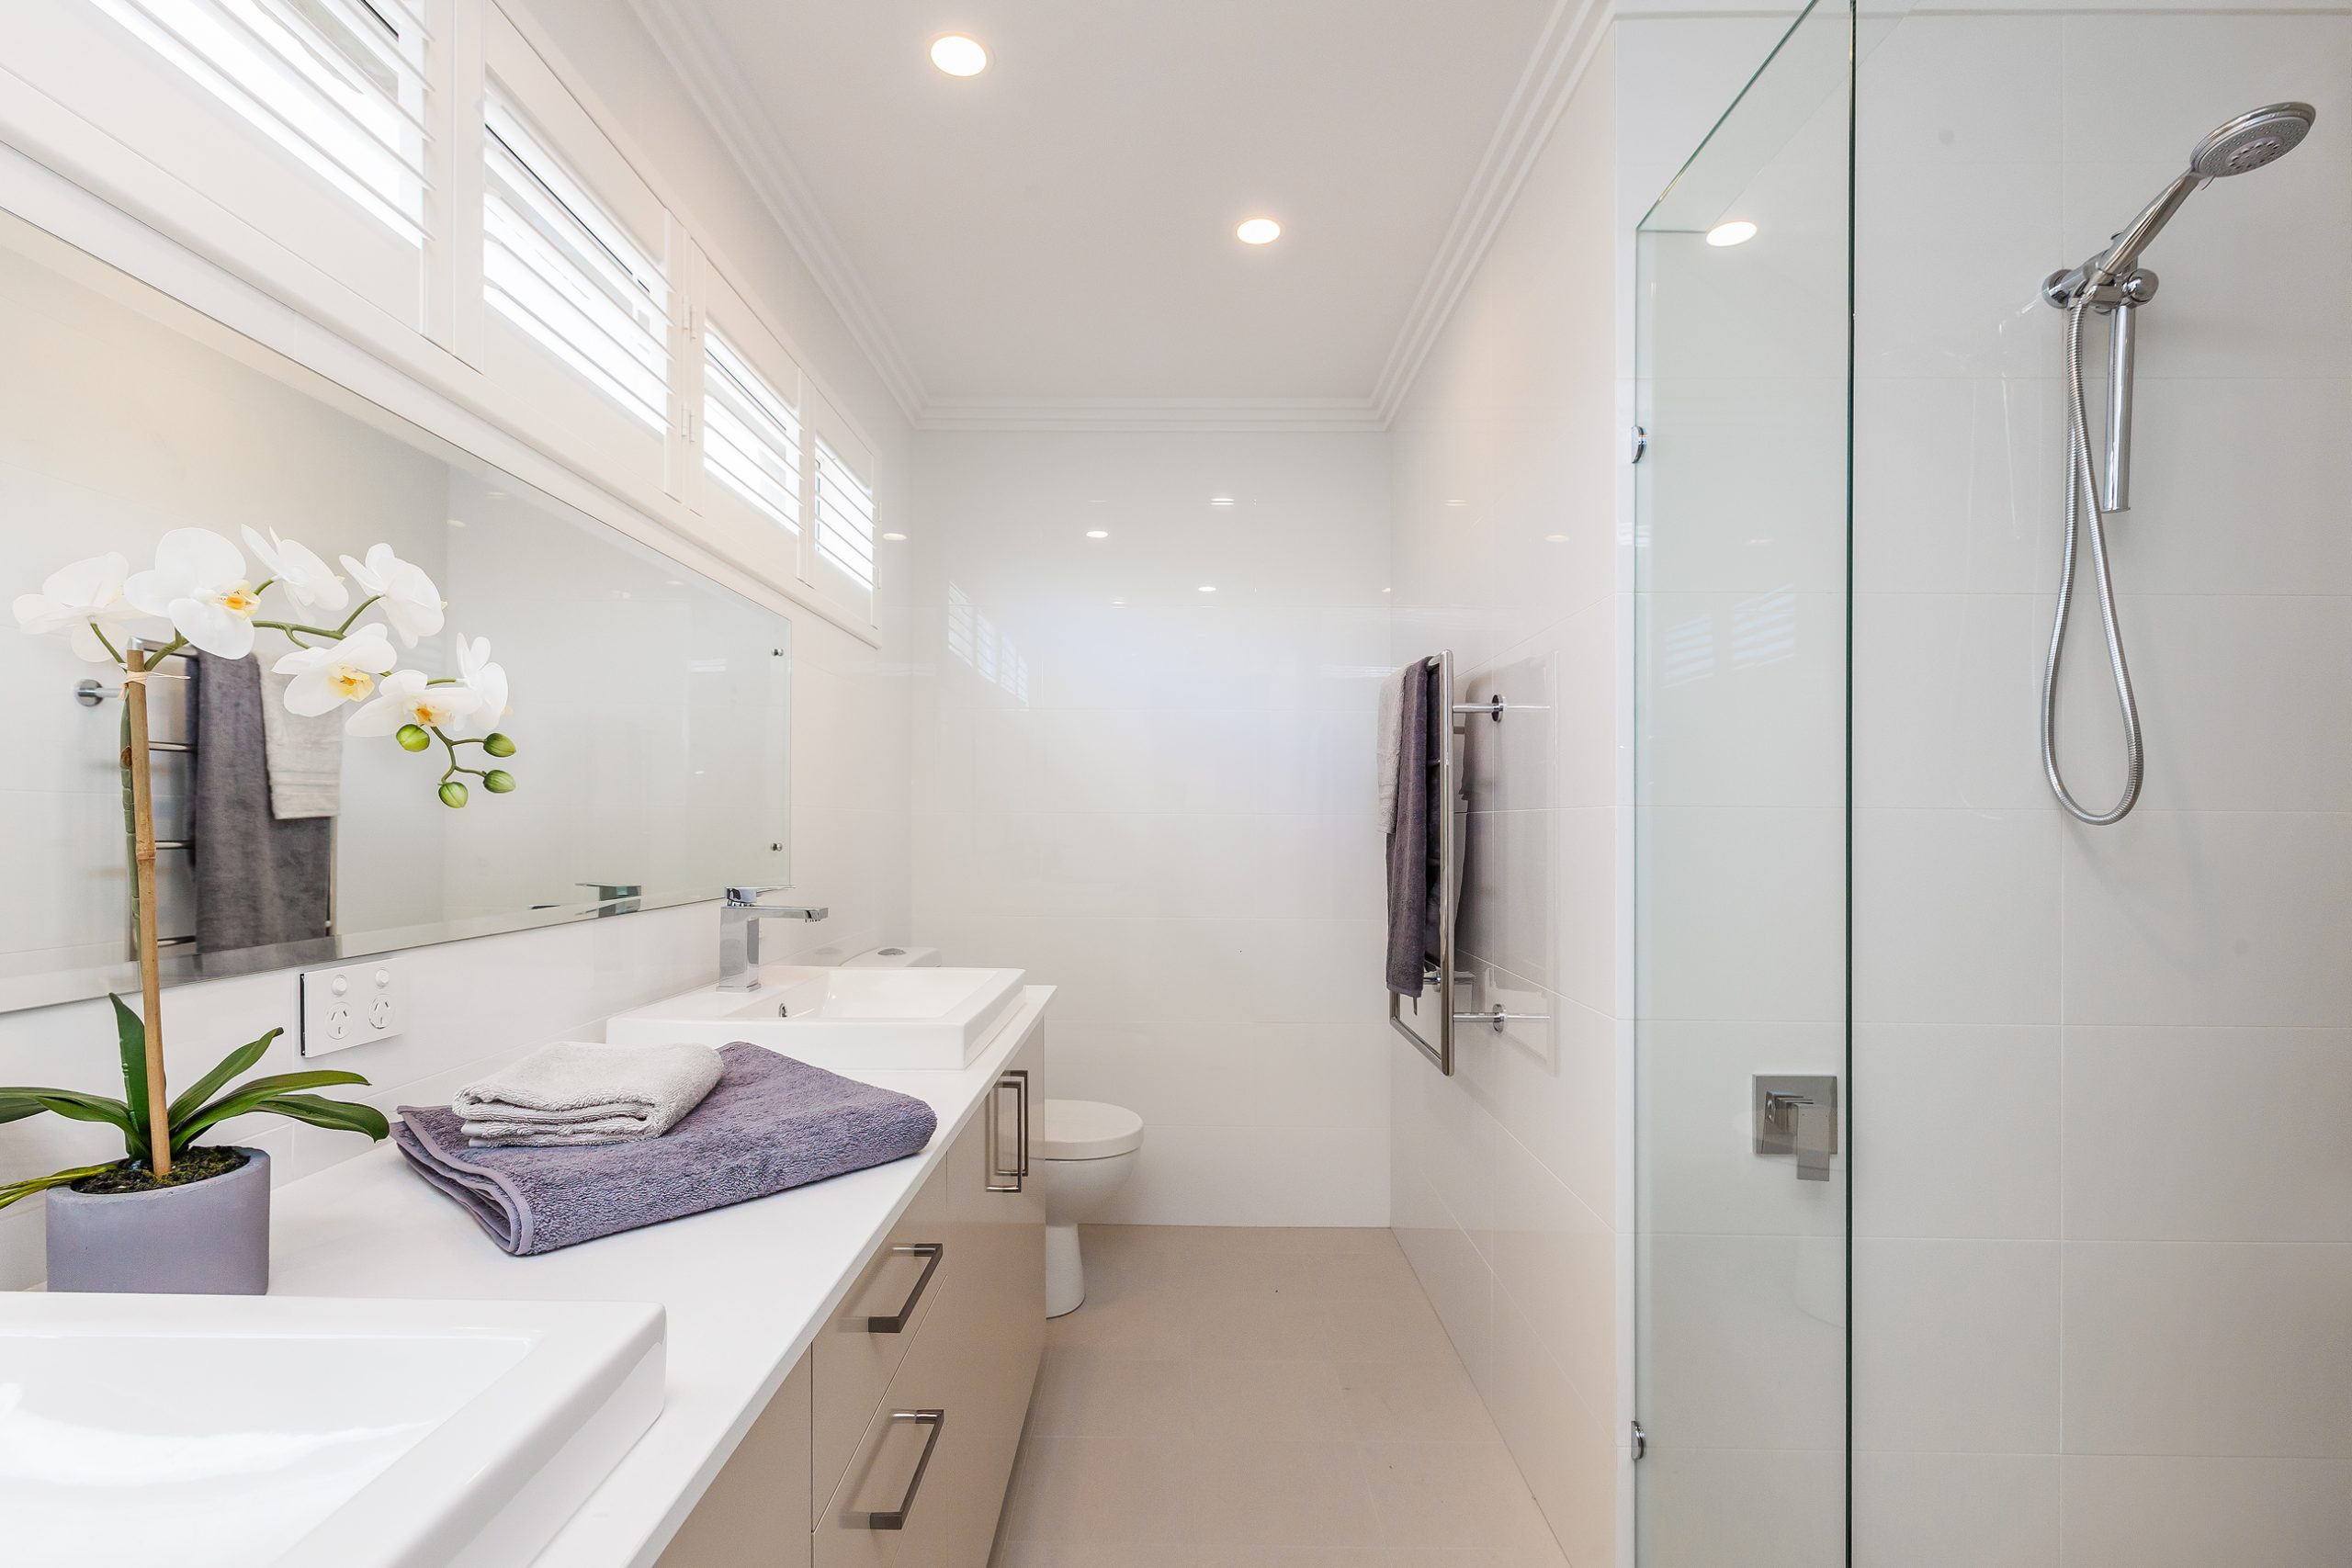 Bathroom with a shower, lavender towels, toilet, mirror and cabinets